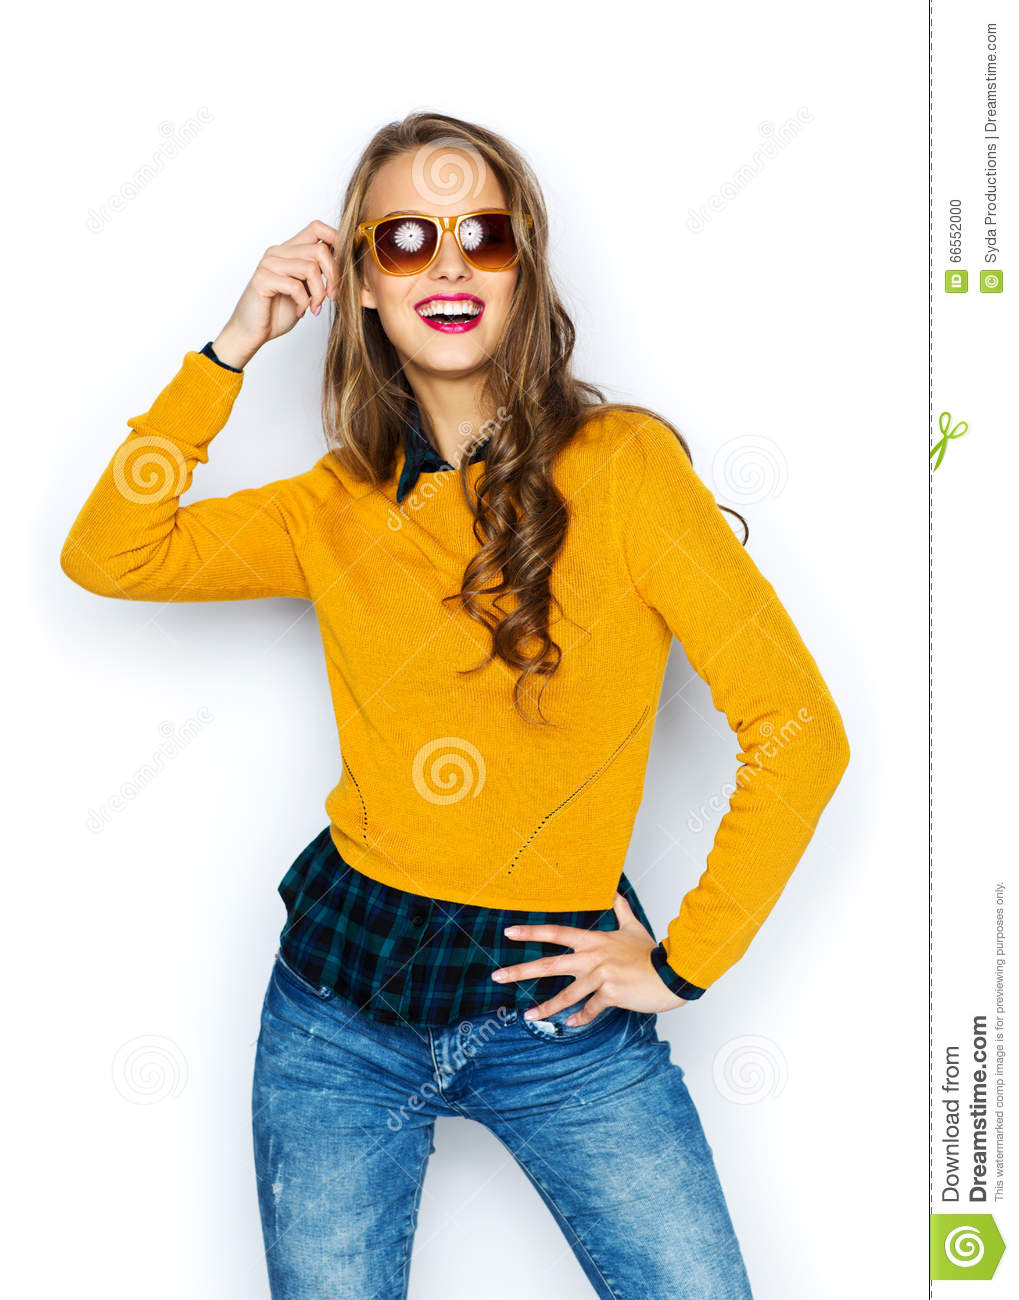 Happy Young Woman Or Teen Girl In Casual Clothes Stock Photo Image 66552000